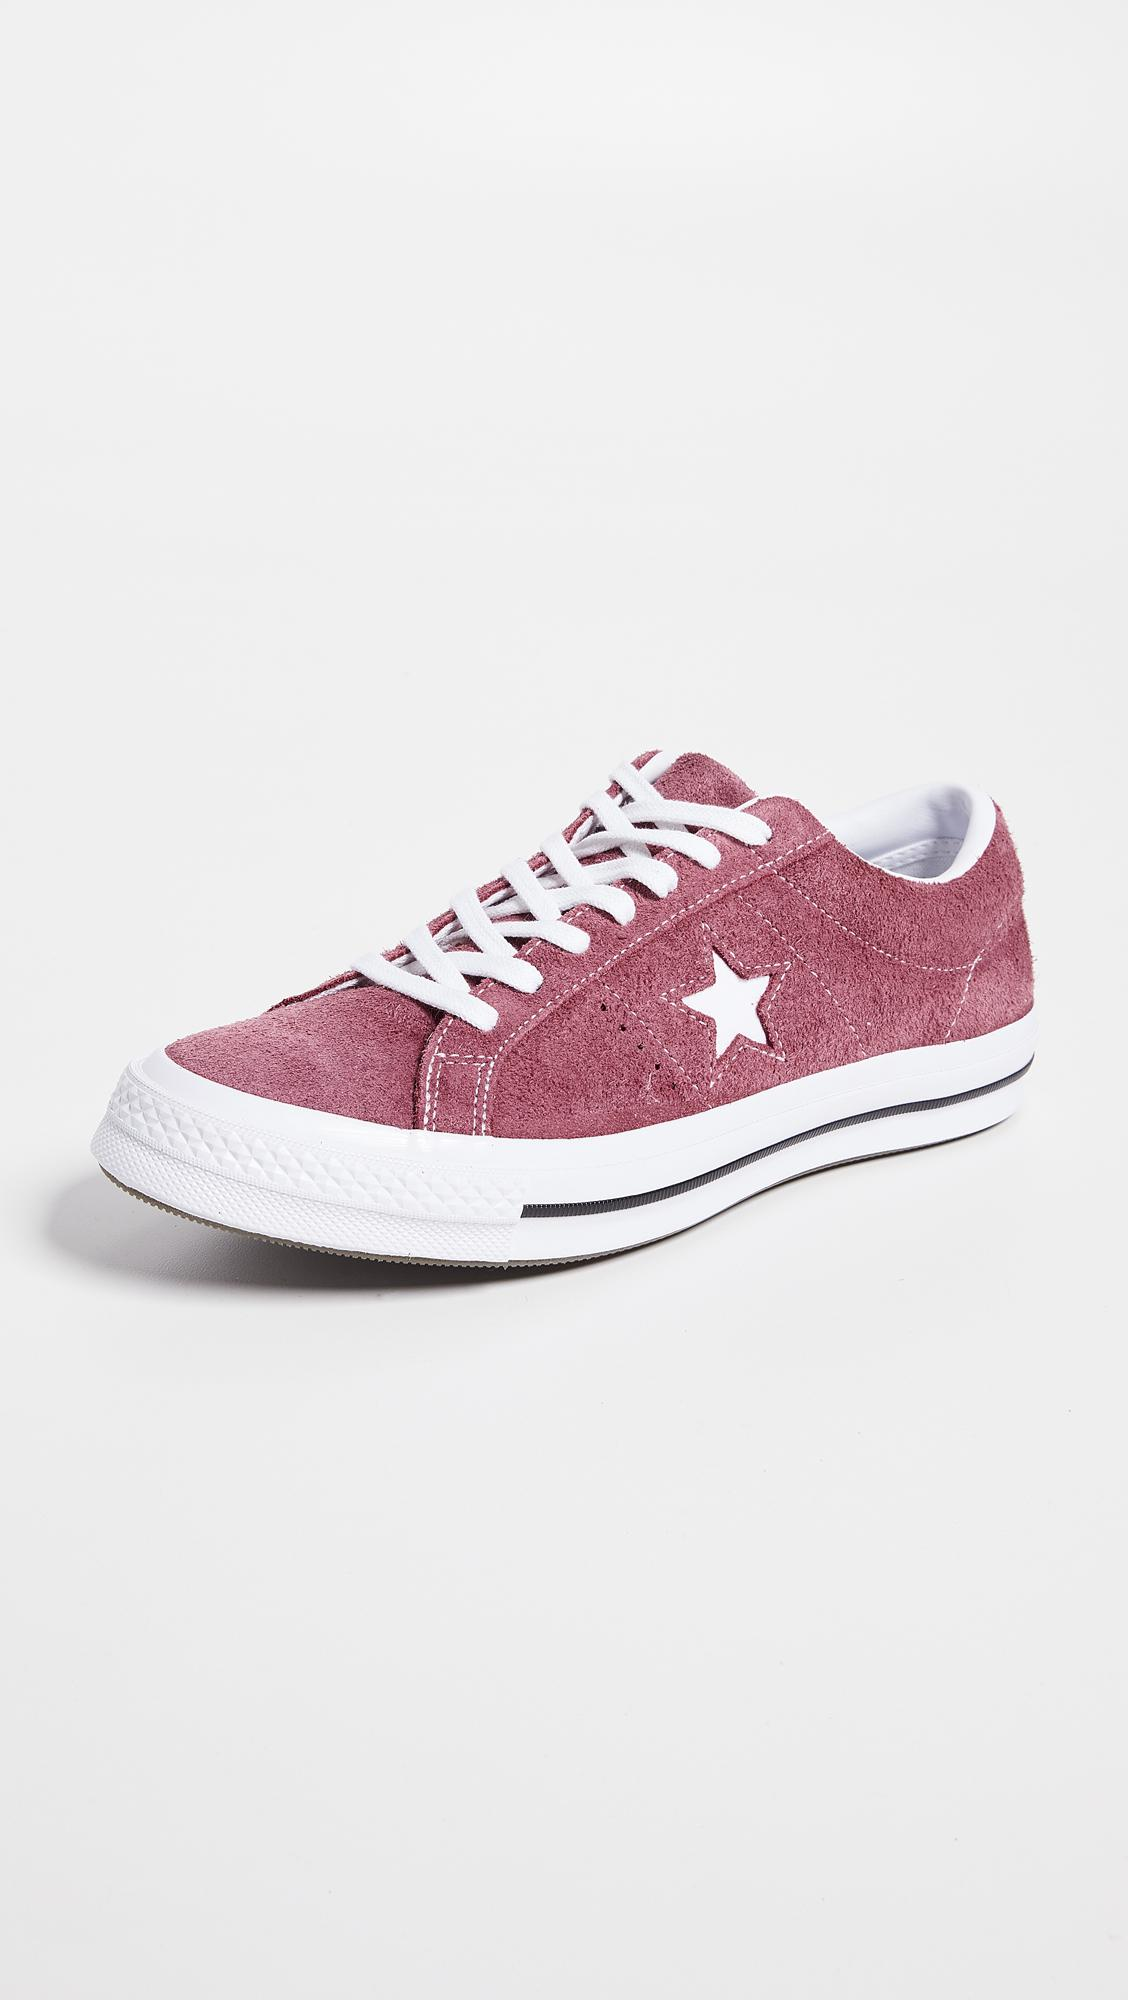 5954da443ba Converse One Star Suede Low Top Sneakers for Men - Lyst